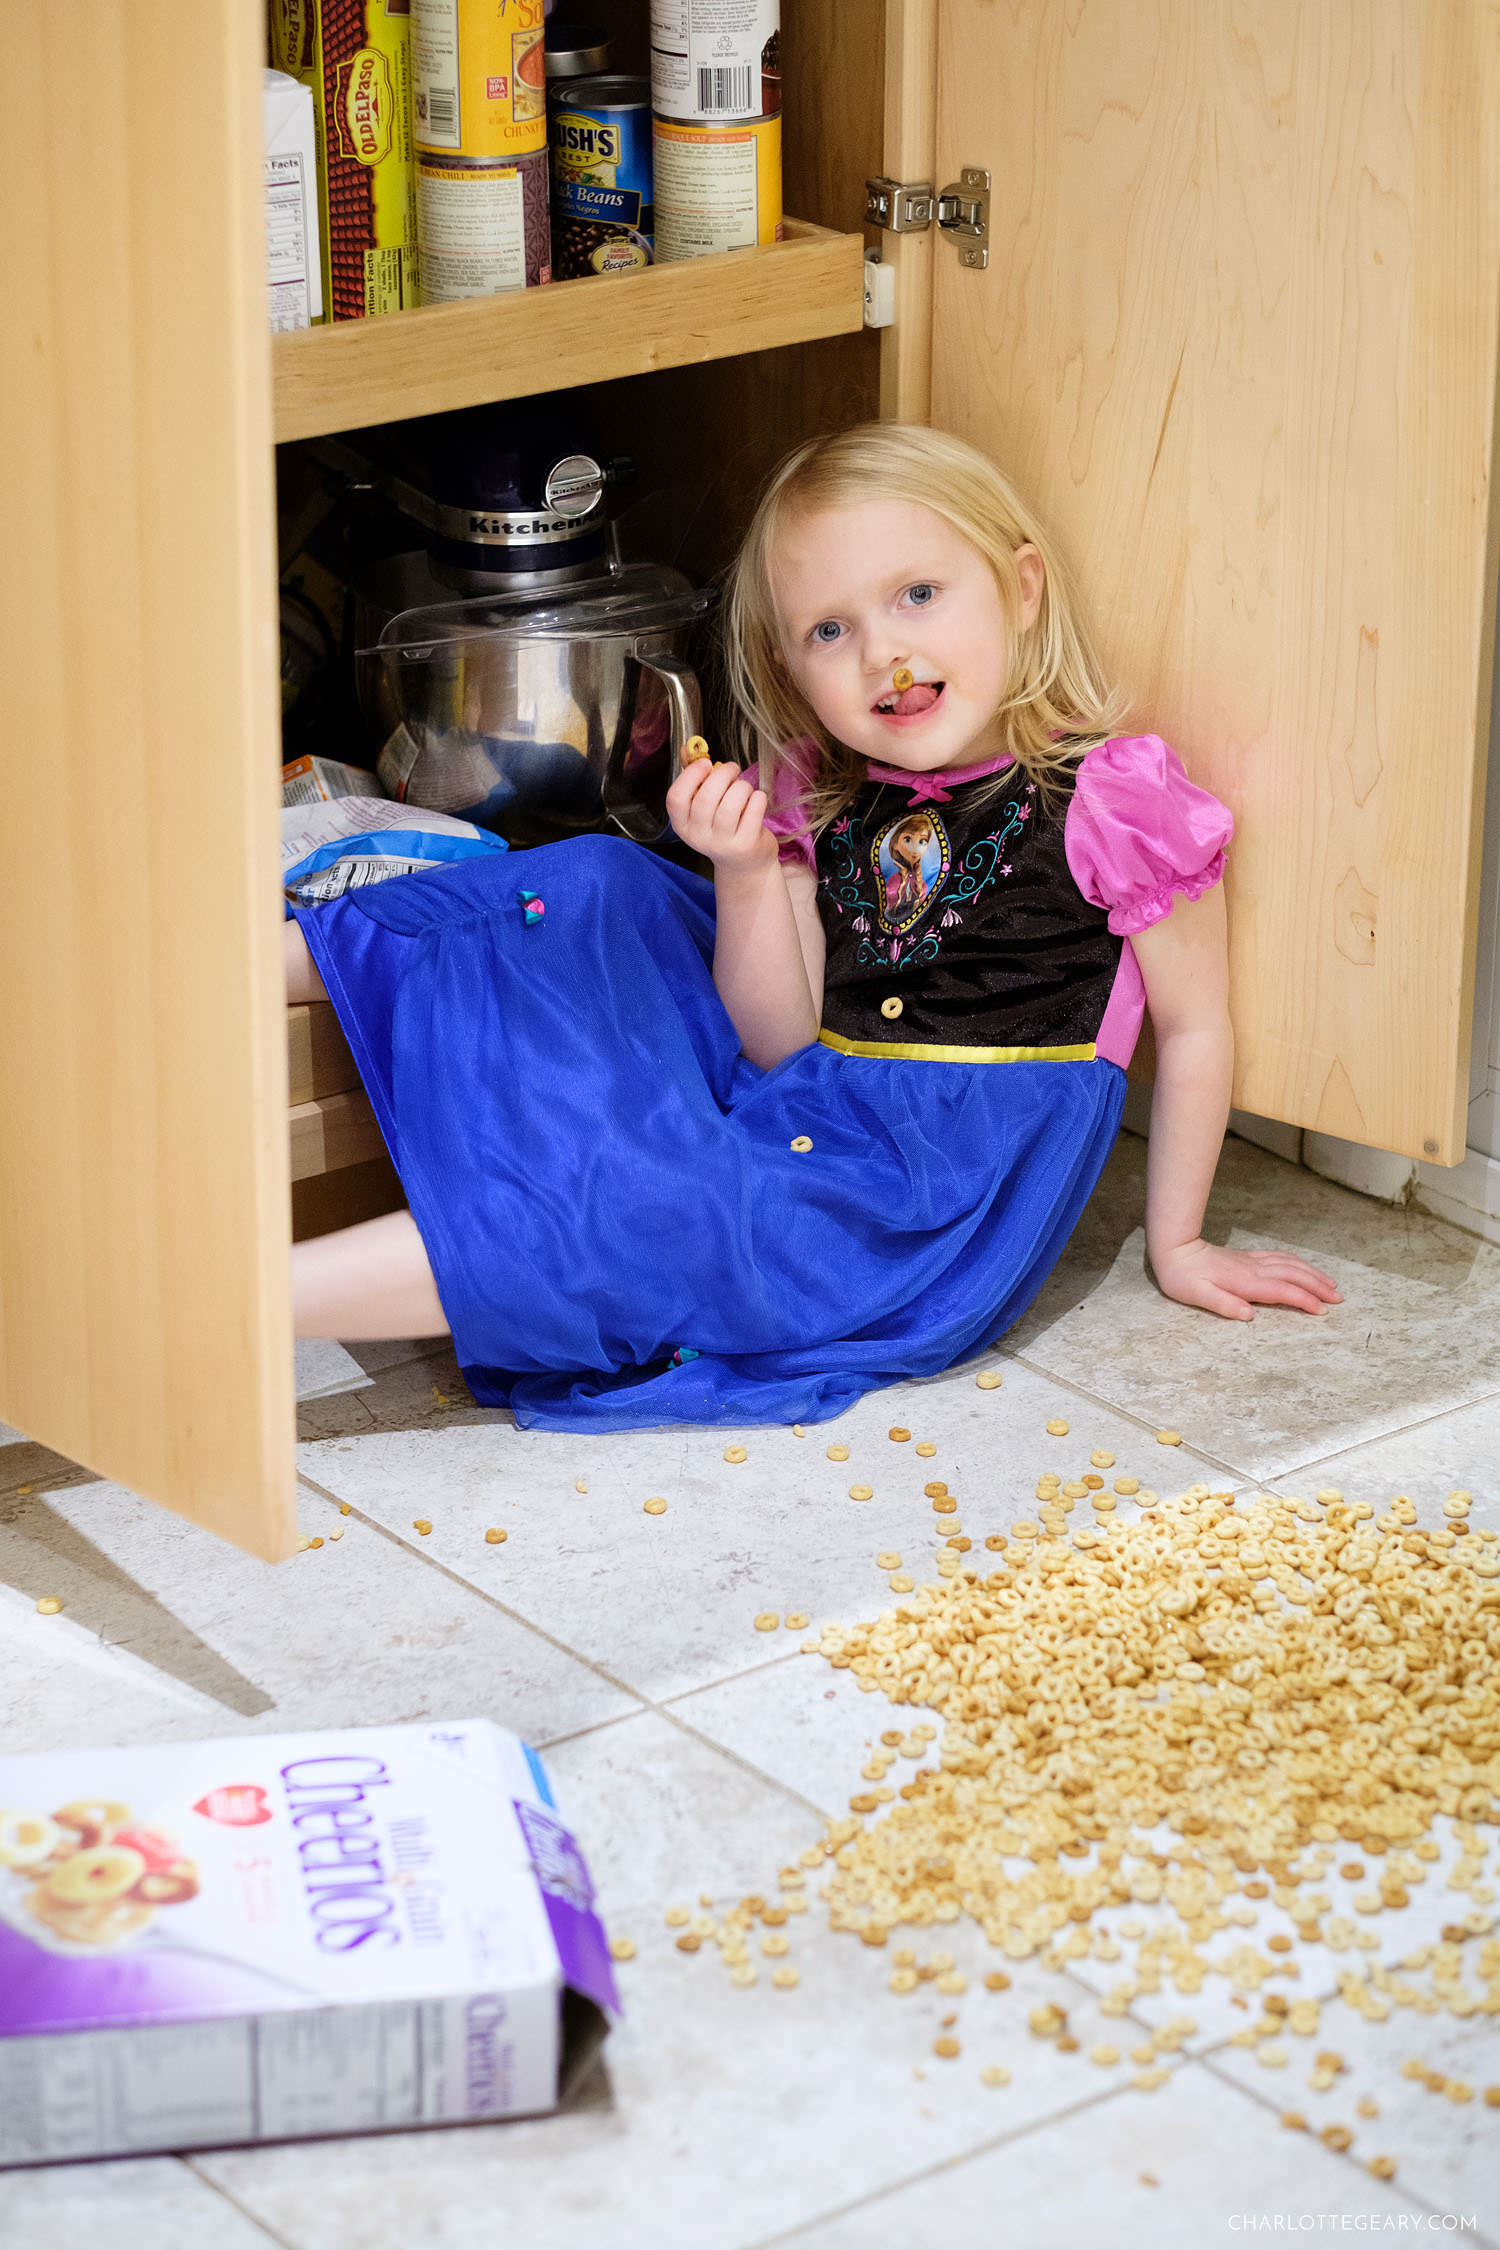 Little girl eats Cheerios off the floor